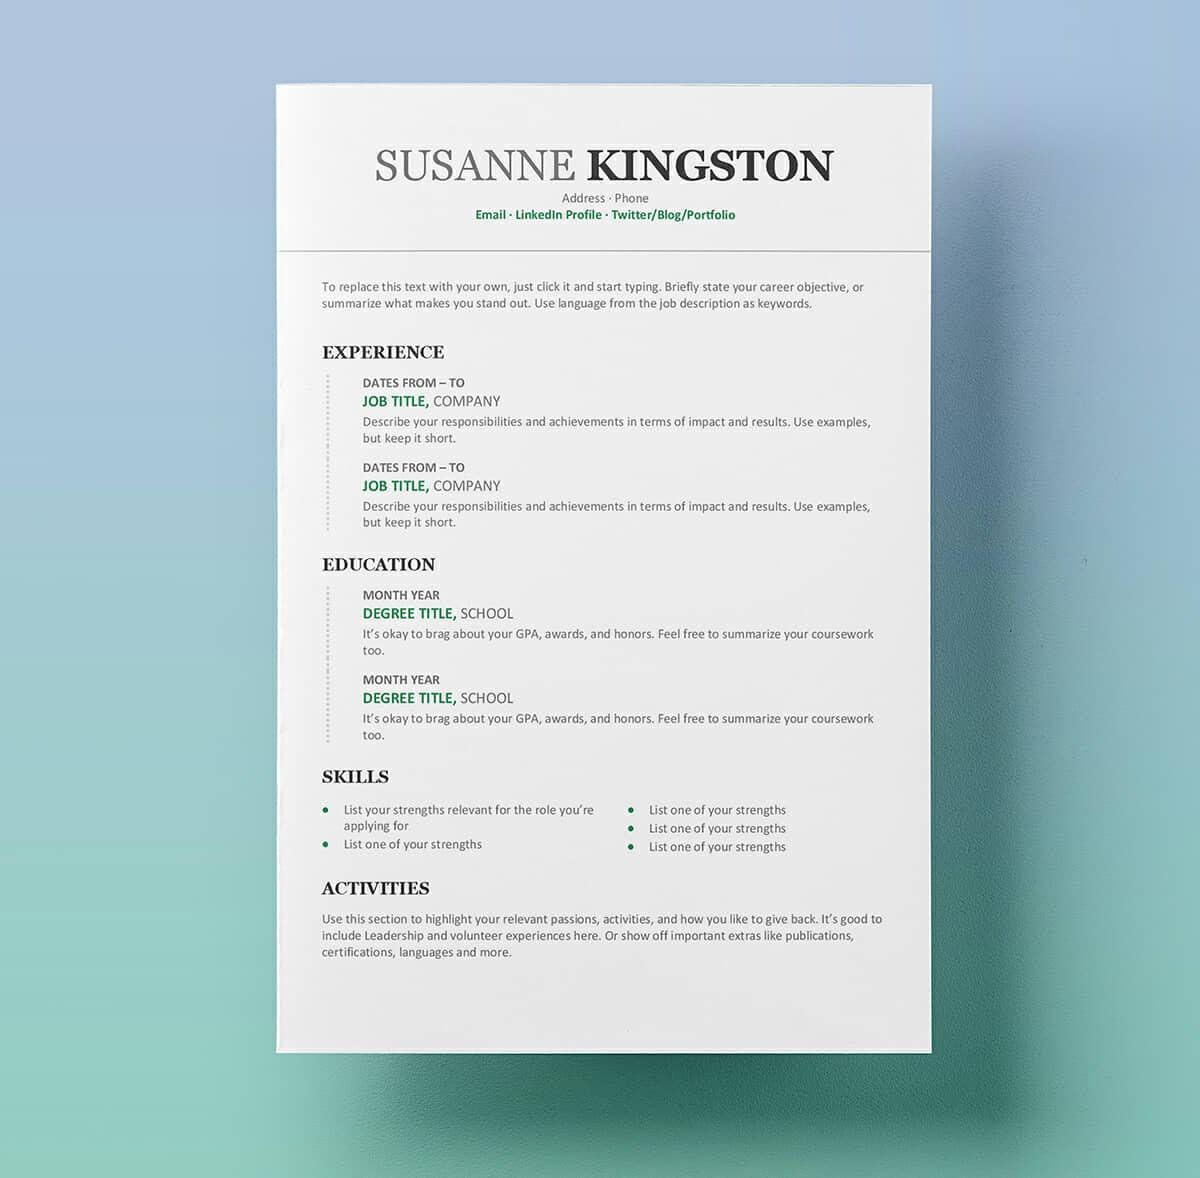 008 Archaicawful Resume Template Free Word Design  Download Cv 2020 FormatFull